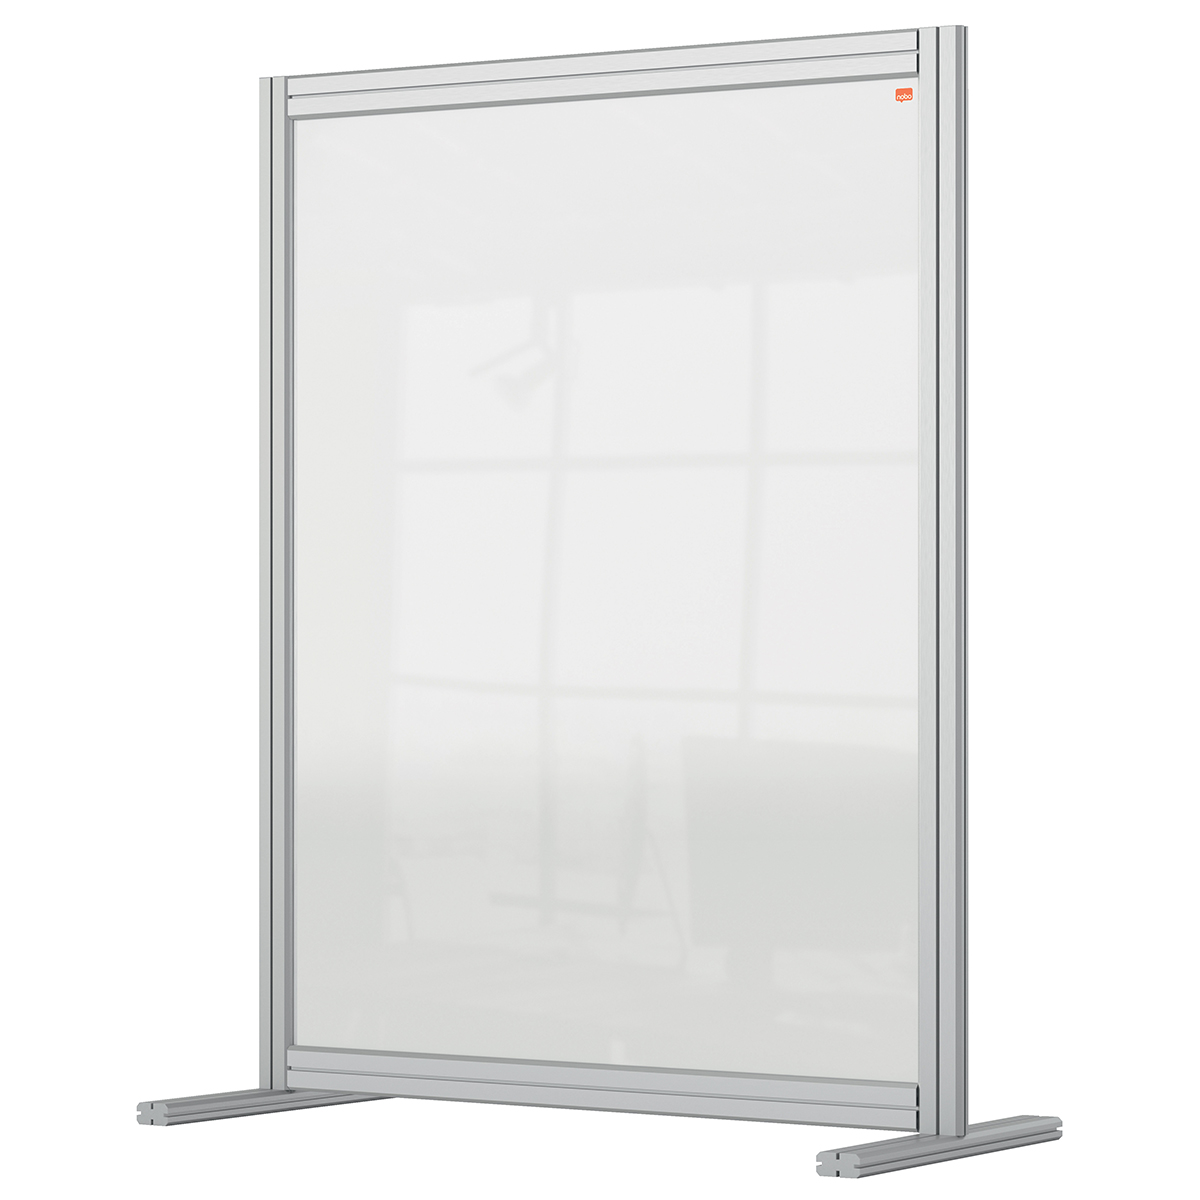 Nobo 1915492 Premium Plus Desk Divider 800x1000mm Acrylic